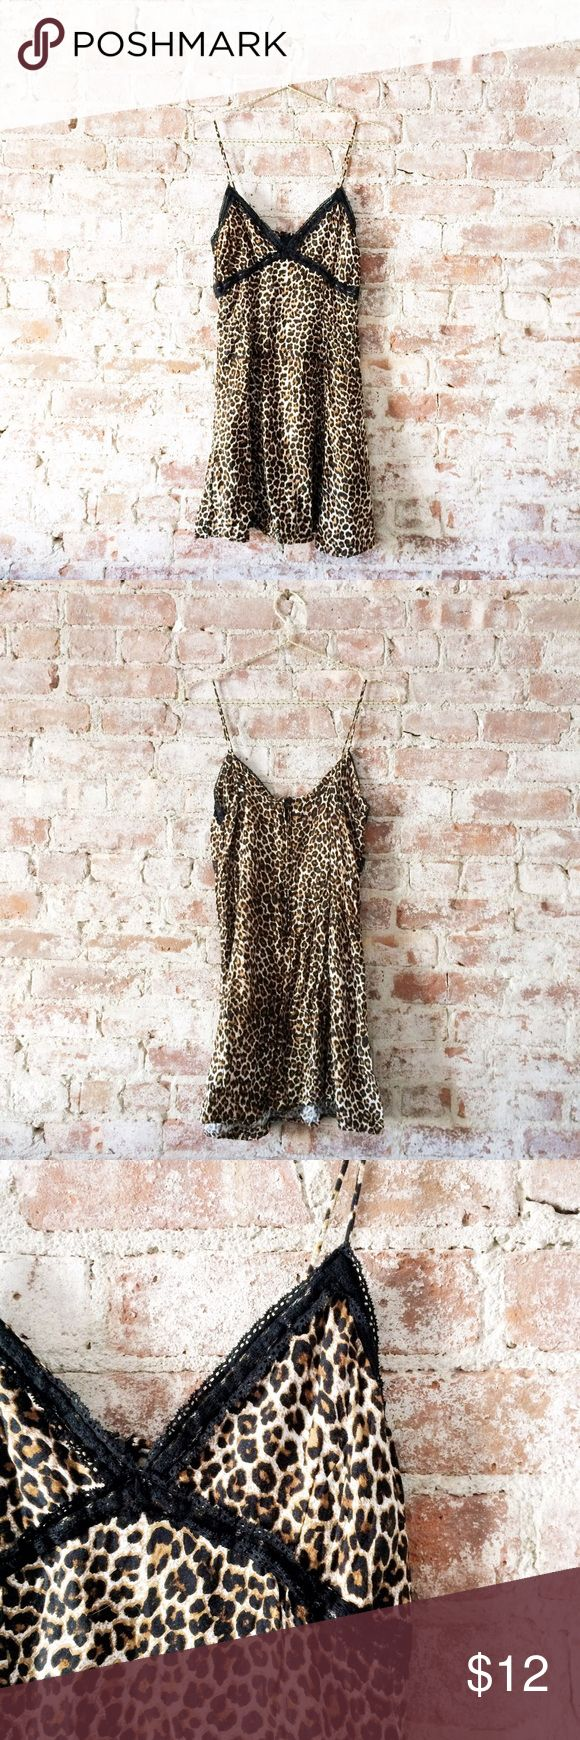 Motel Rocks Antoinette Leopard Slip Dress Sexy lil slip Dress in leopard by Motel Rocks! Fitted up top and trimmed with lace. Looks great with strappy bralettes peeping out, too! Priced low for a quick sale. No trades. Motel Rocks Dresses Mini